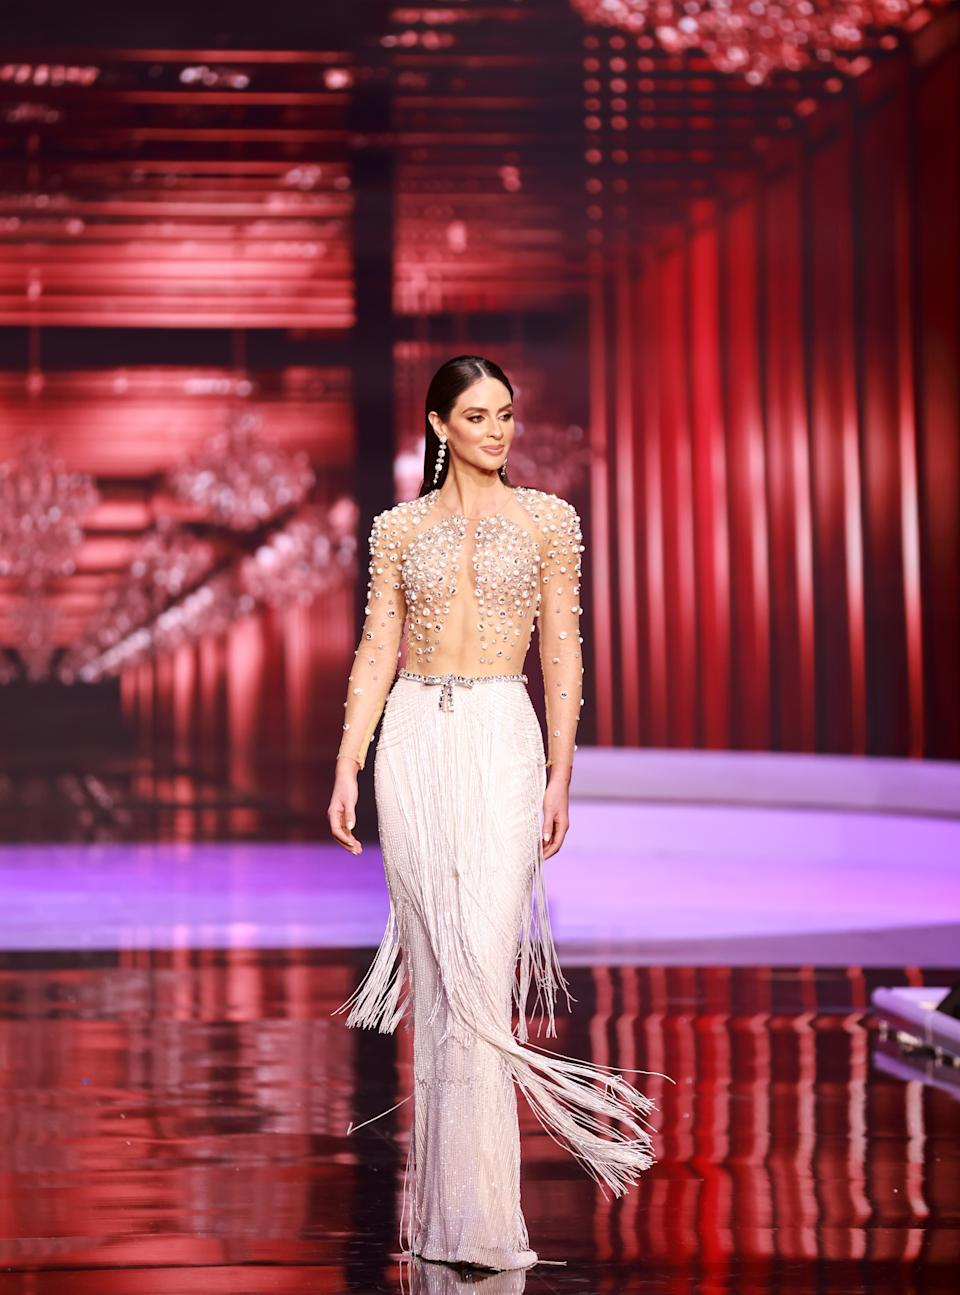 <p>Estefania Soto Torres, Miss Universe Puerto Rico 2020 competes on stage as a Top 10 finalist in an evening gown of her choice during the 69th Miss Universe Competition on May 16, 2021 at the Seminole Hard Rock Hotel & Casino in Hollywood, Florida airing LIVE on FYI and Telemundo. Contestants from around the globe have spent the last few weeks touring, filming, rehearsing and preparing to compete for the Miss Universe crown. (PHOTO: Miss Universe)</p>